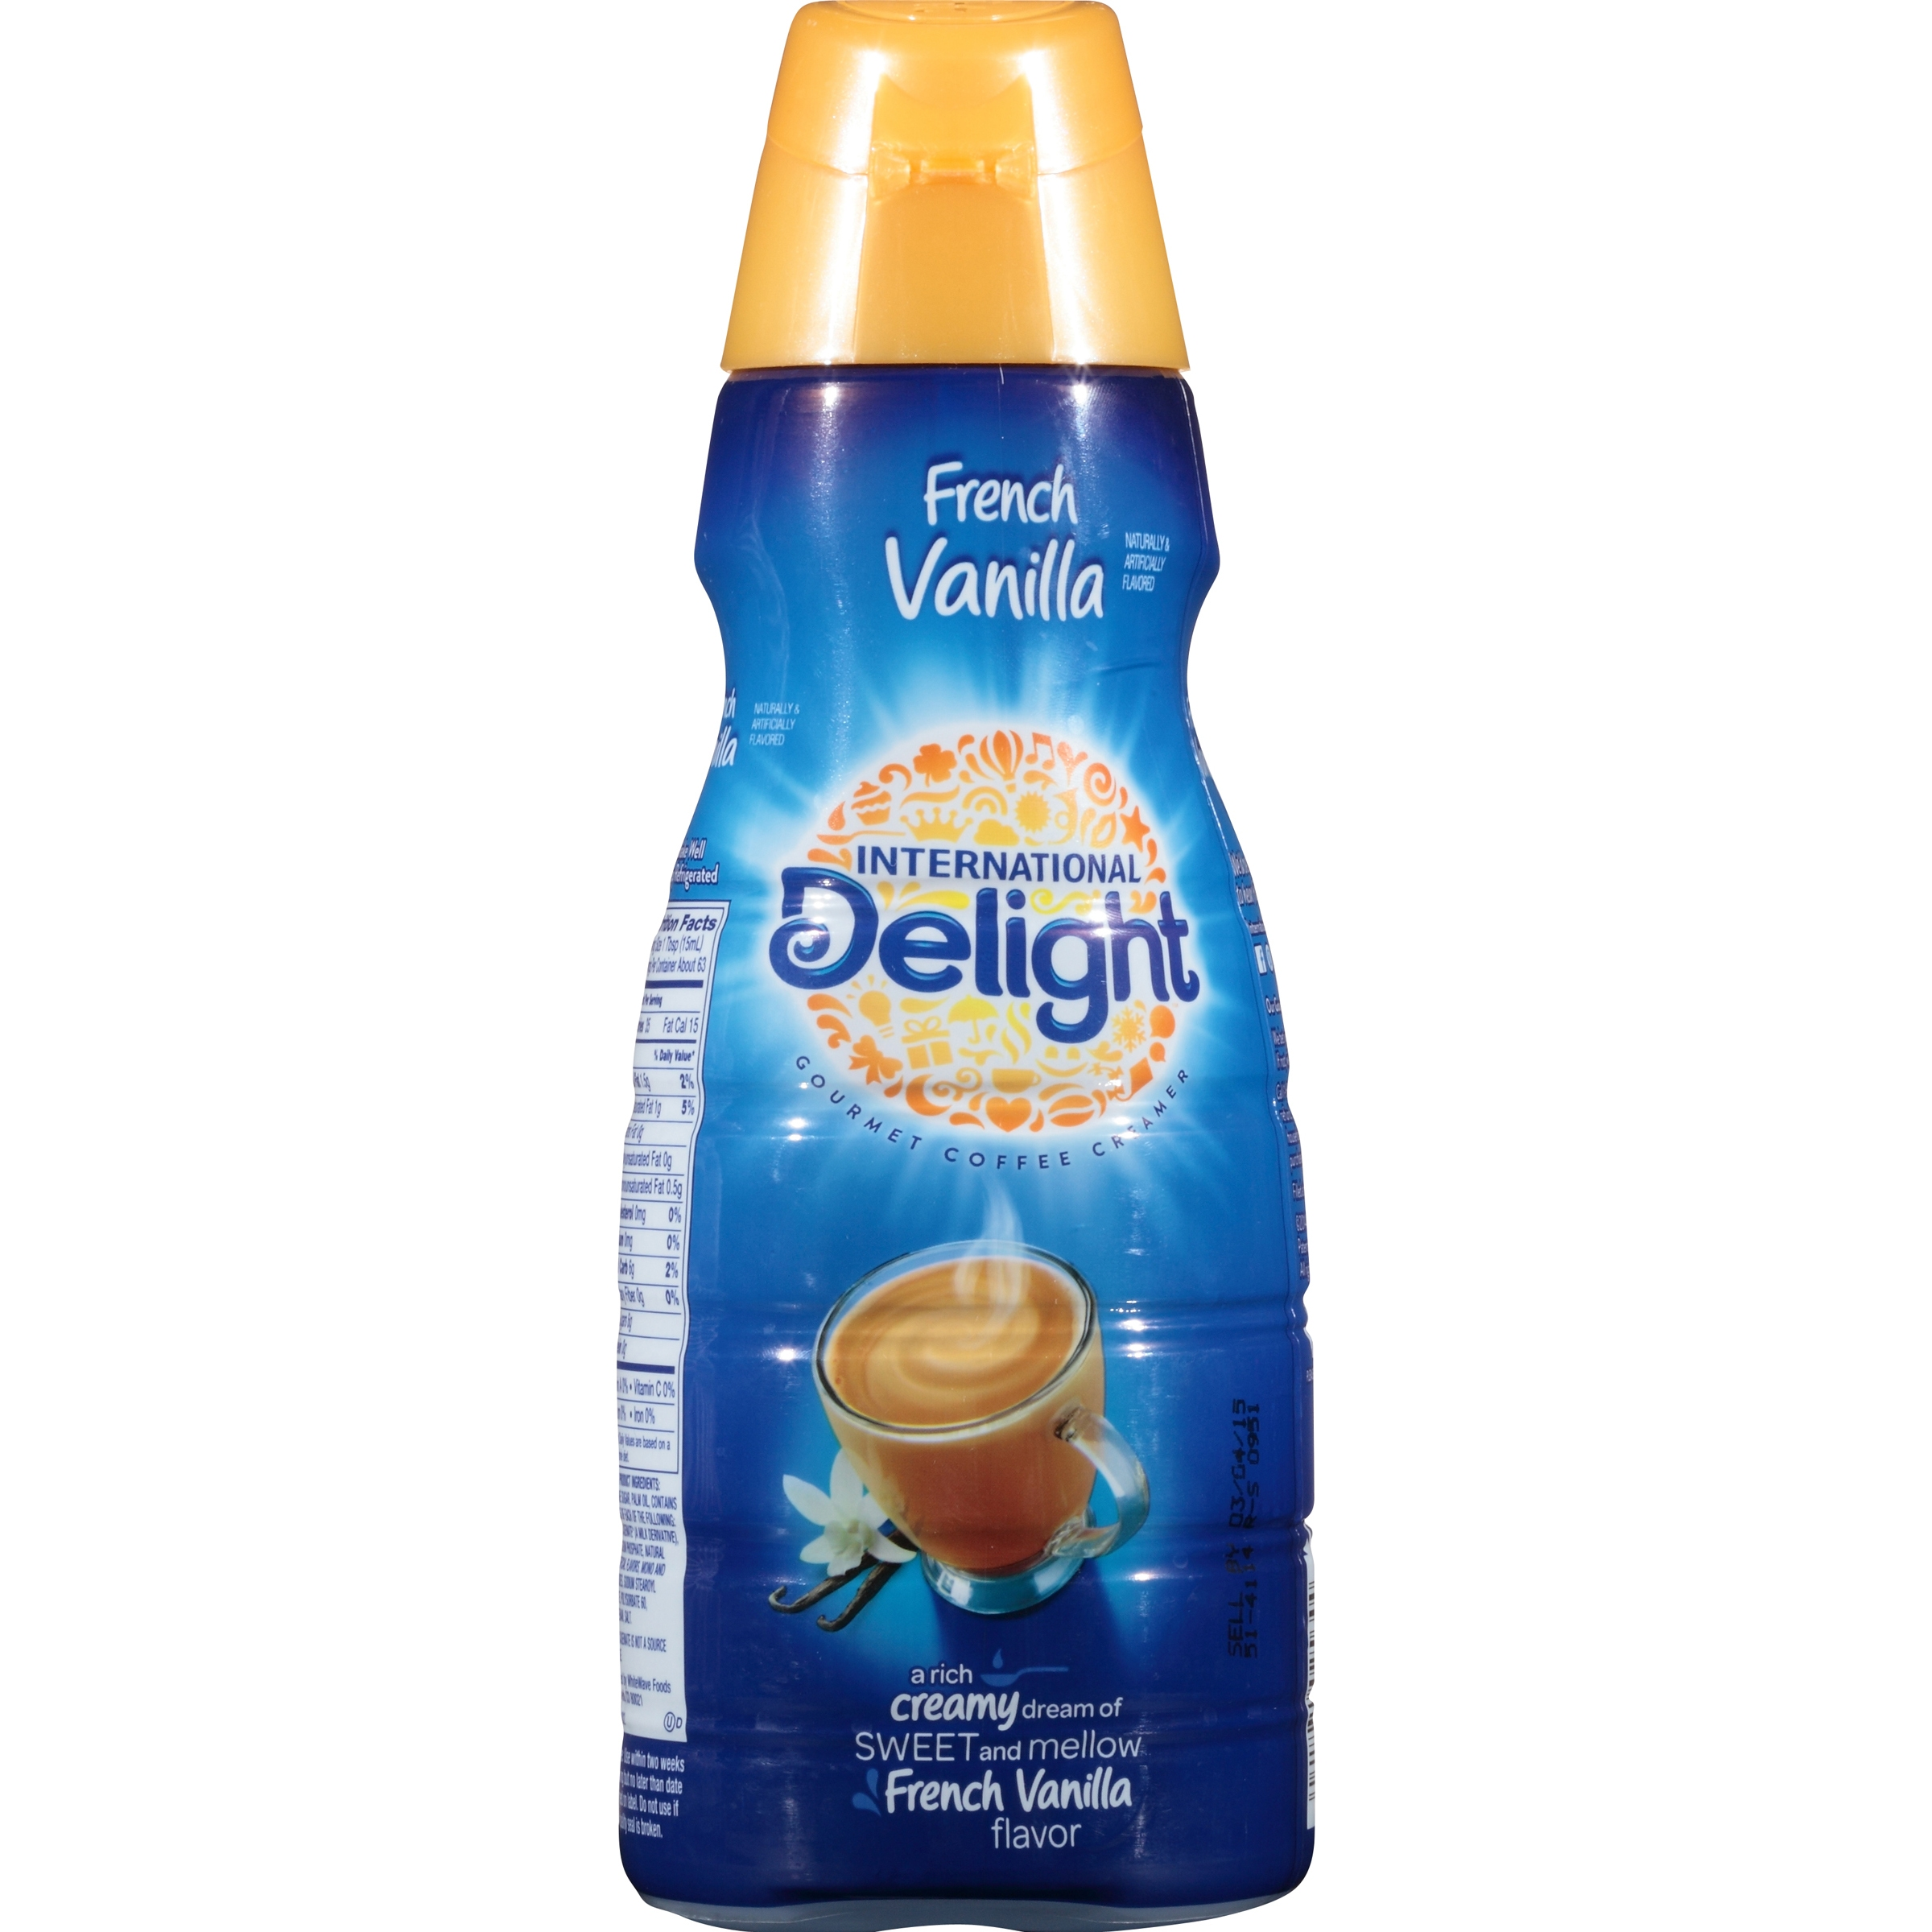 International Delight French Vanilla Coffee Creamer, 32 oz